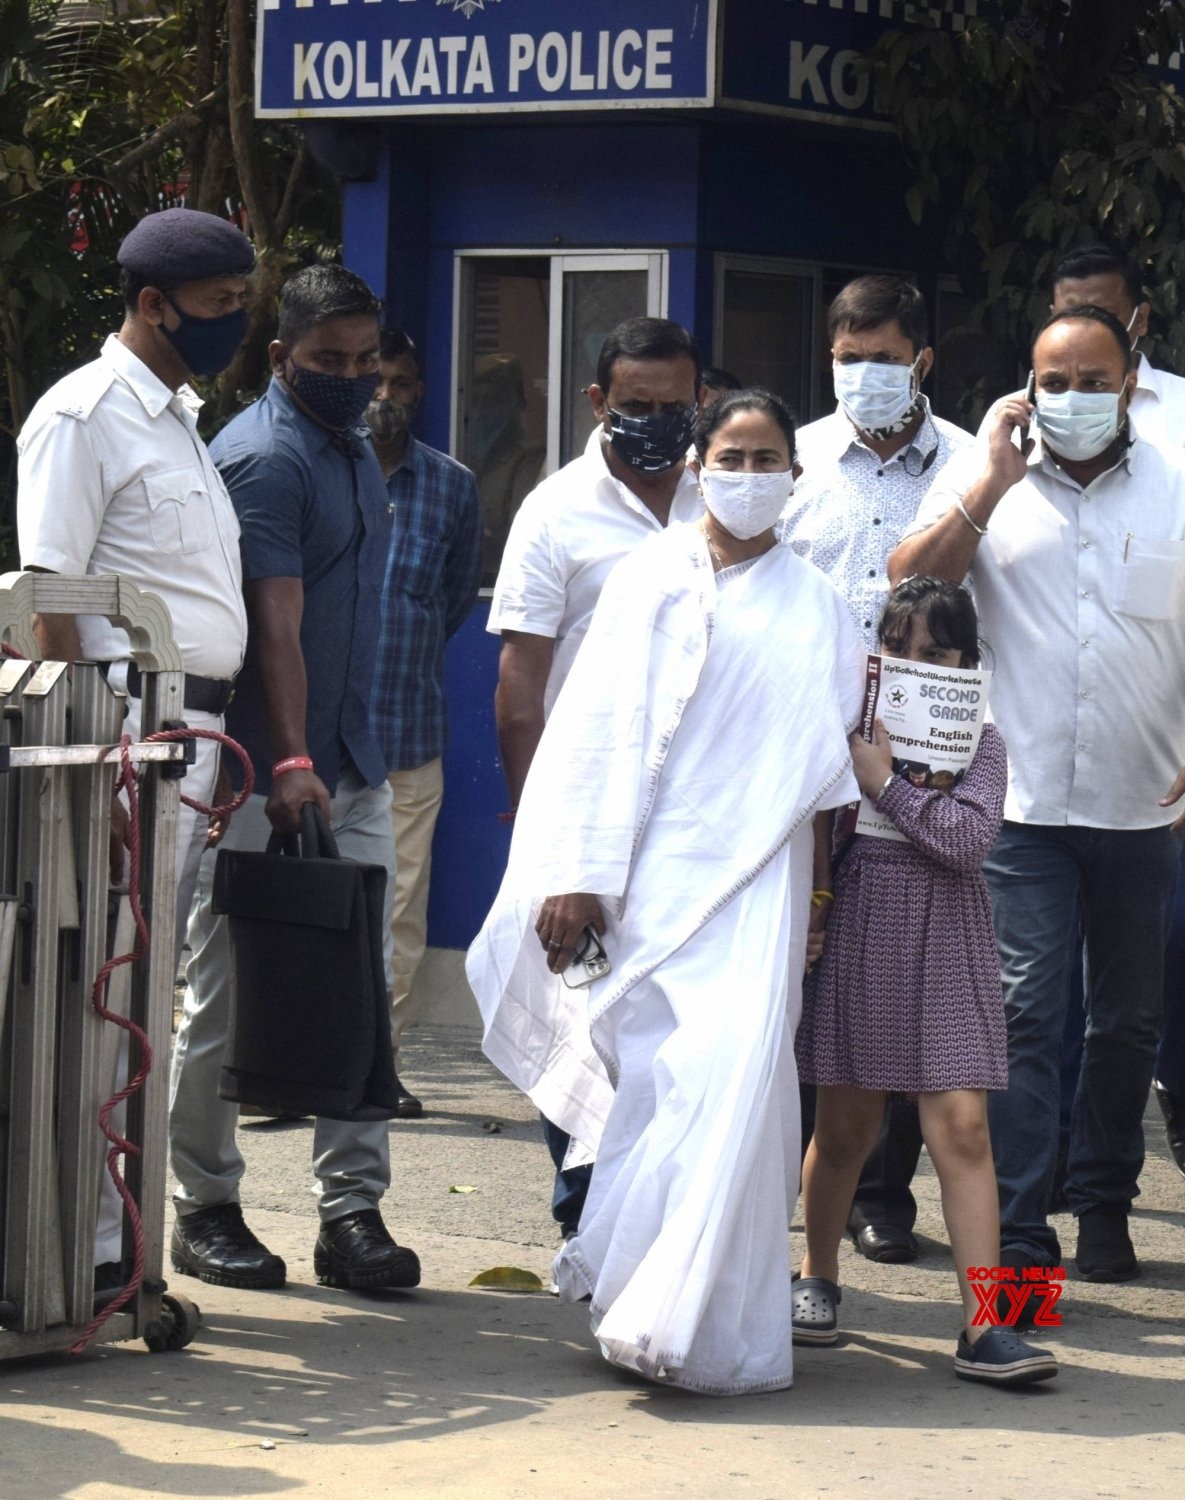 Kolkata: West Bengal Chief Minister Mamata Banerjee along with TMC MP Abhishek Banerjee's daughter at his residence #Gallery